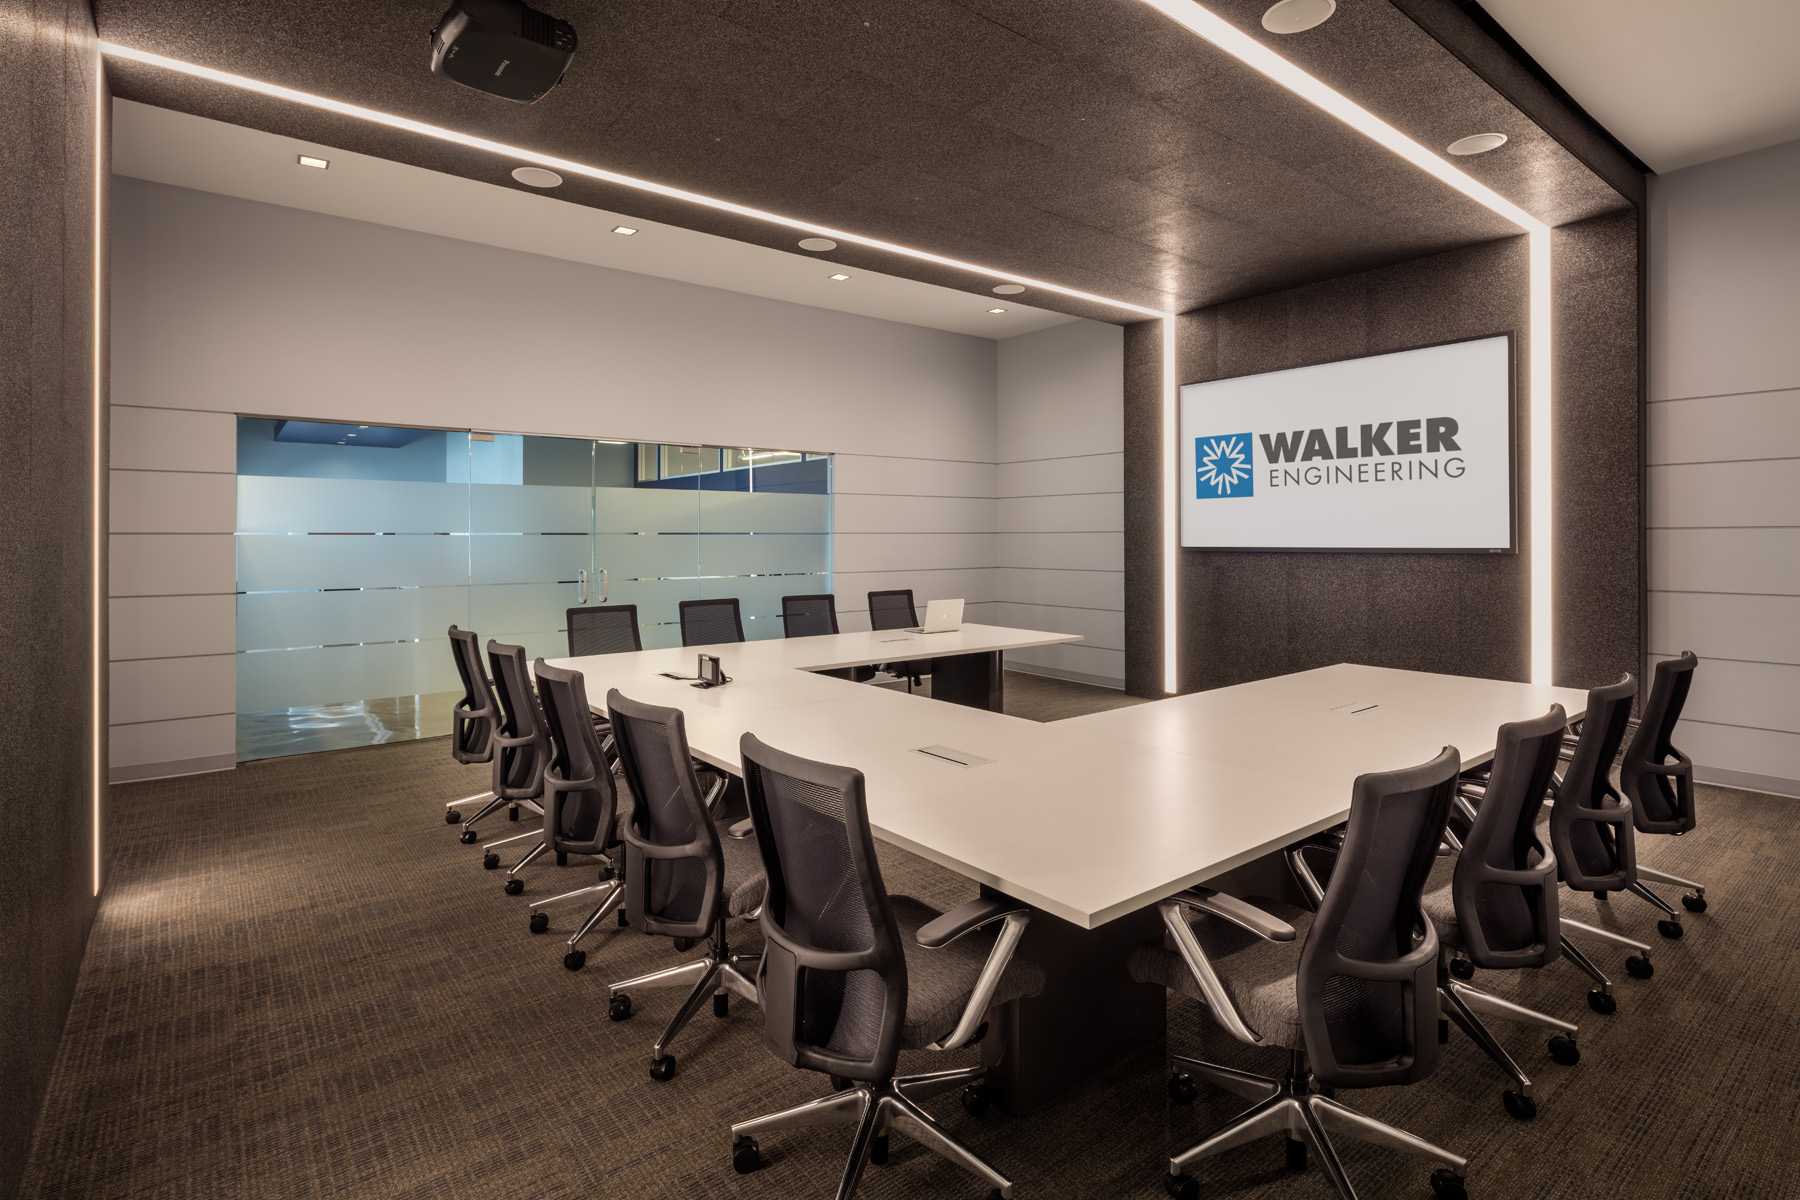 1319 / WALKER ENGINEERING / m ARCHITECTS